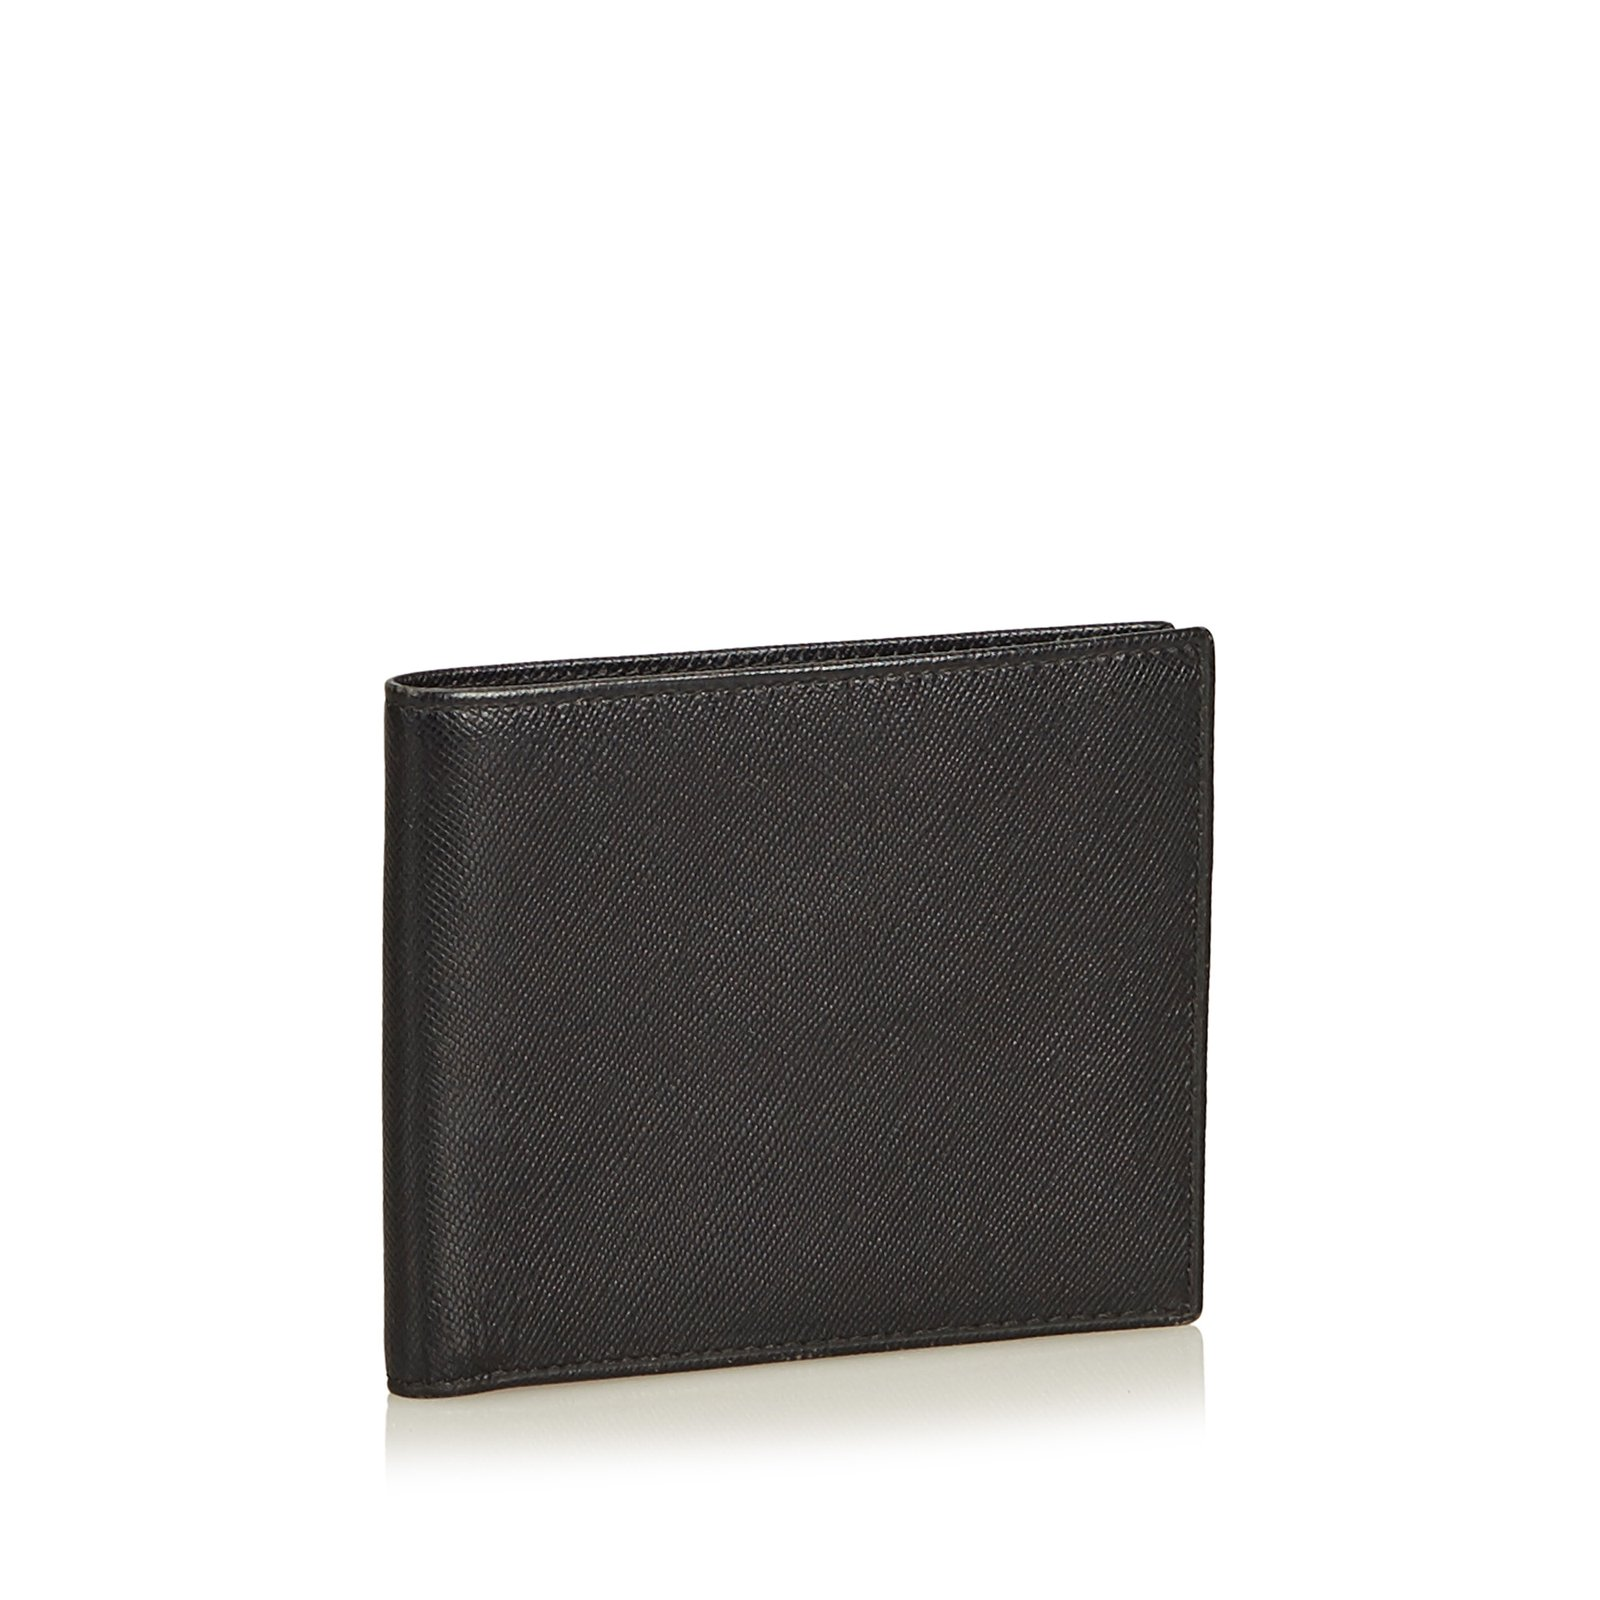 8d05a3e824c8 Prada Leather Small Wallet Wallets Small accessories Leather,Other Black  ref.91026 - Joli Closet